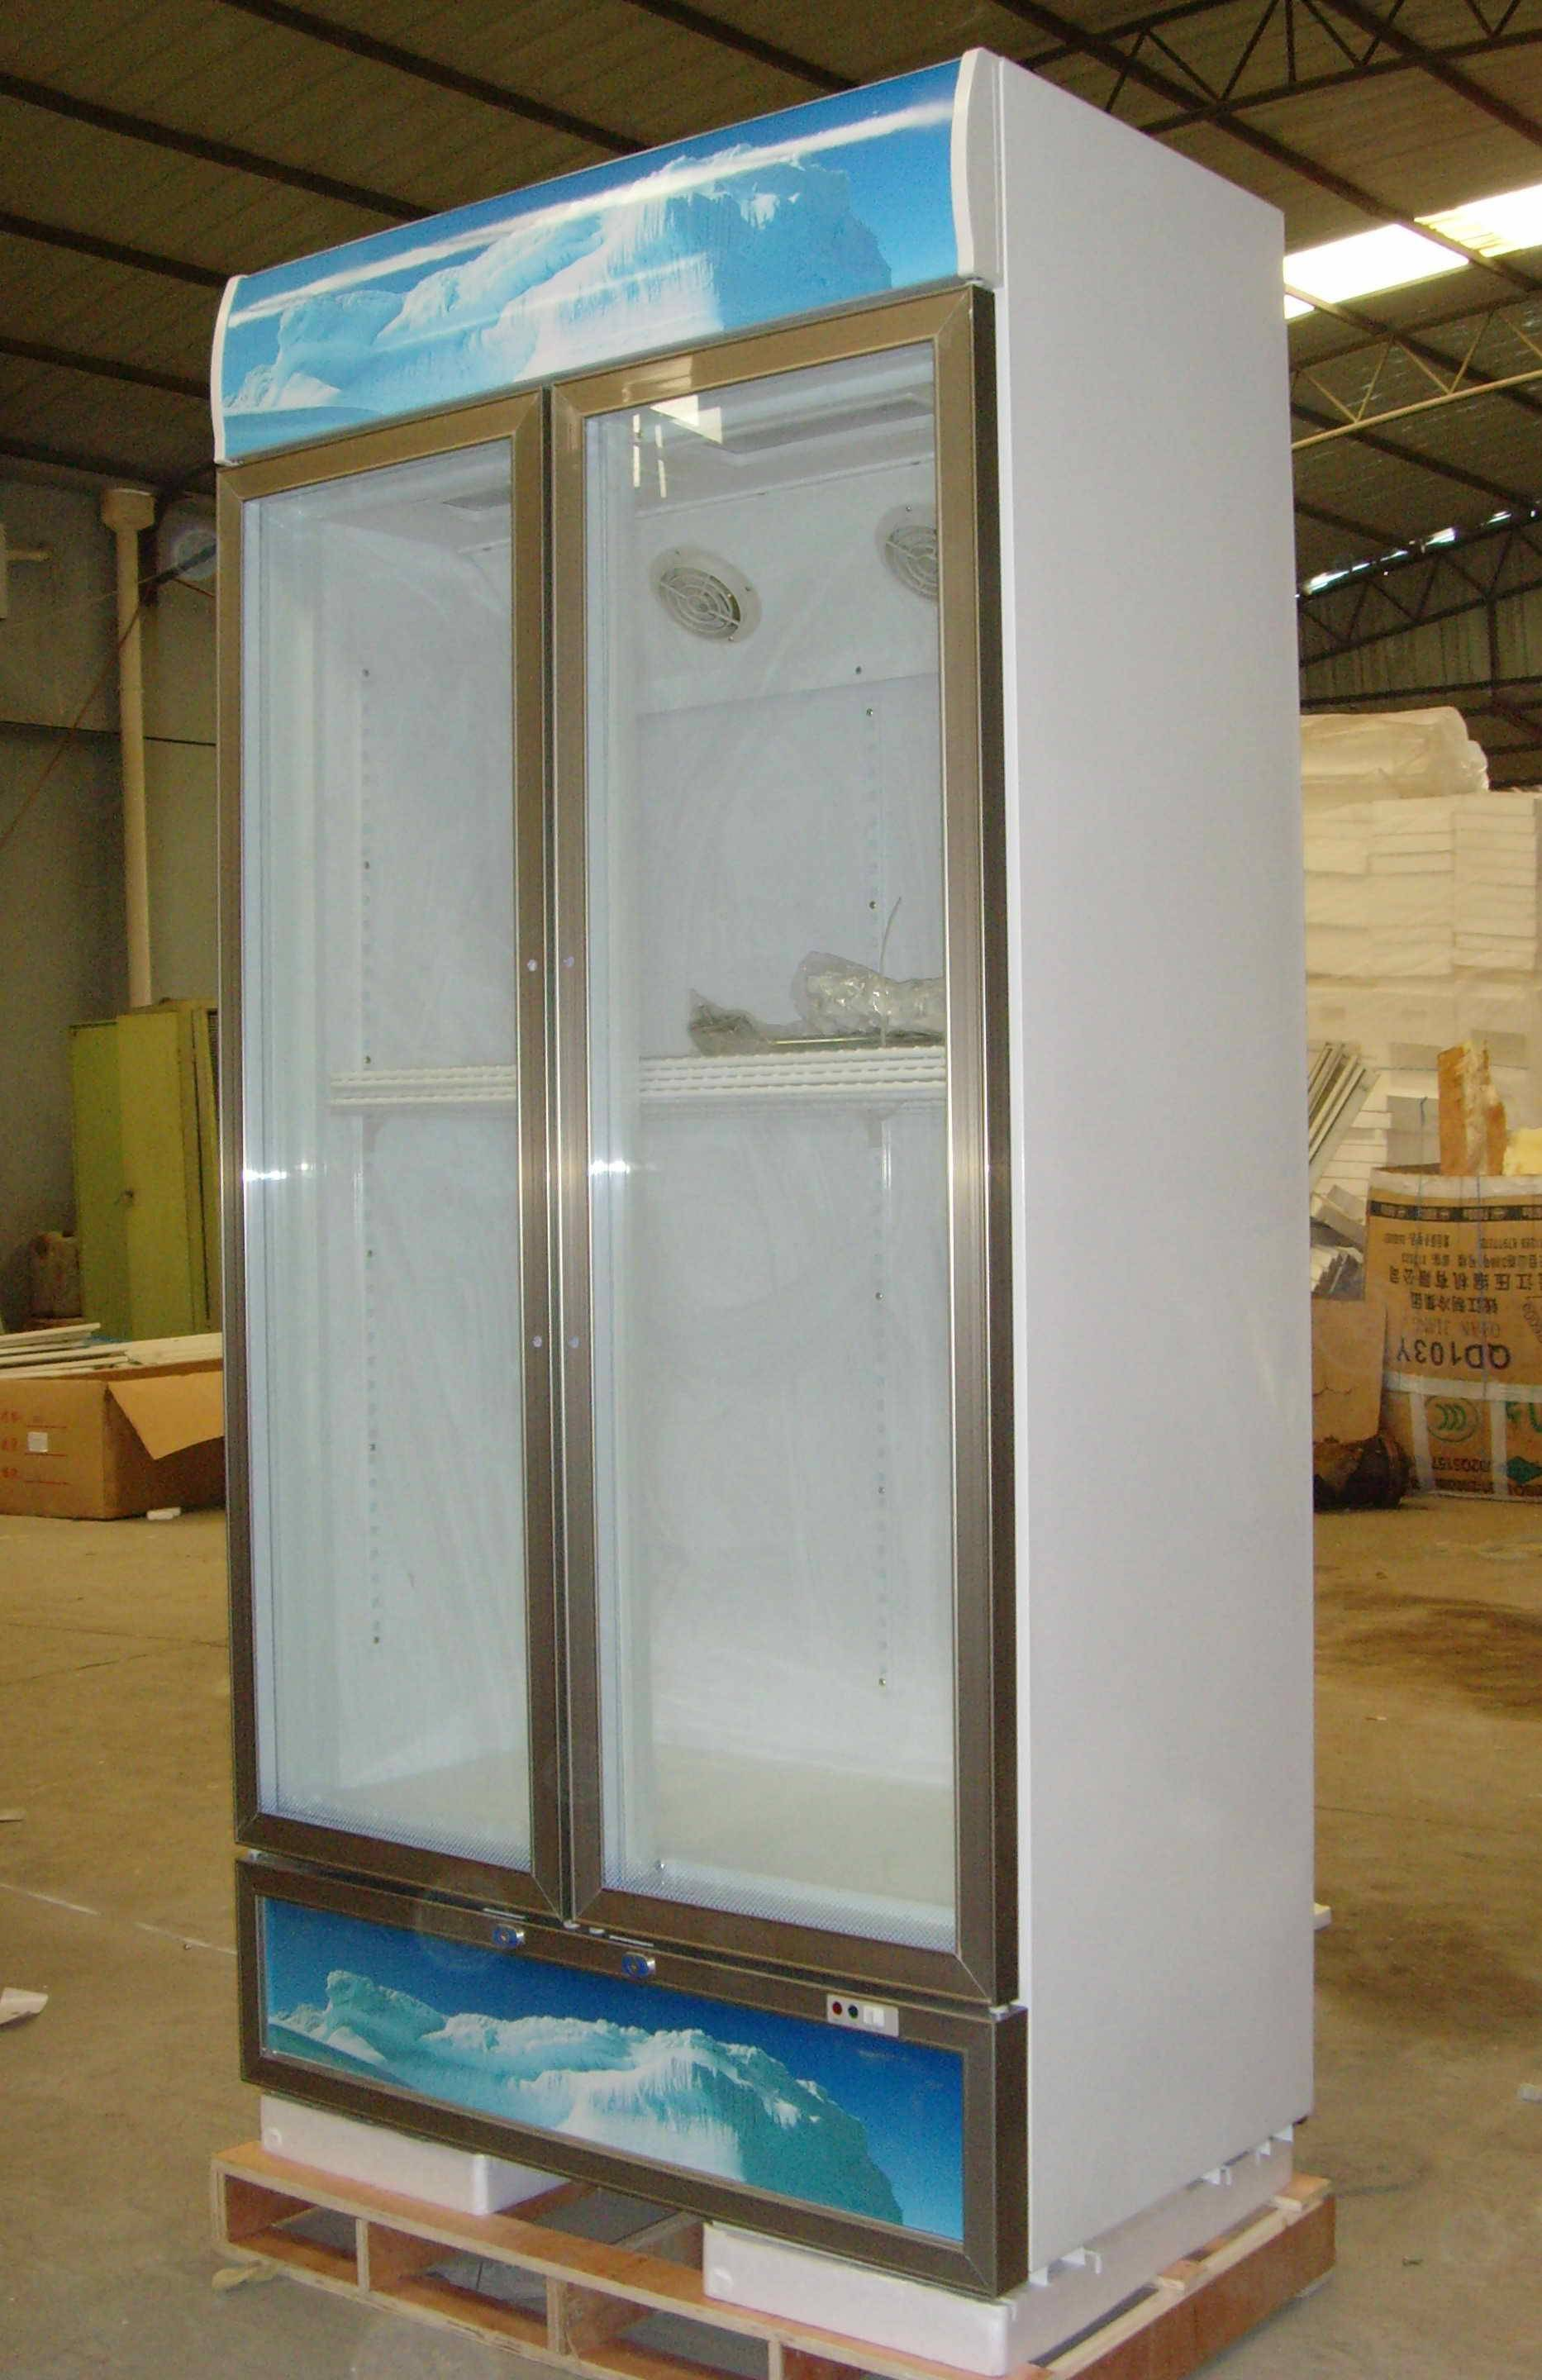 upright cooler-two/three/four door series